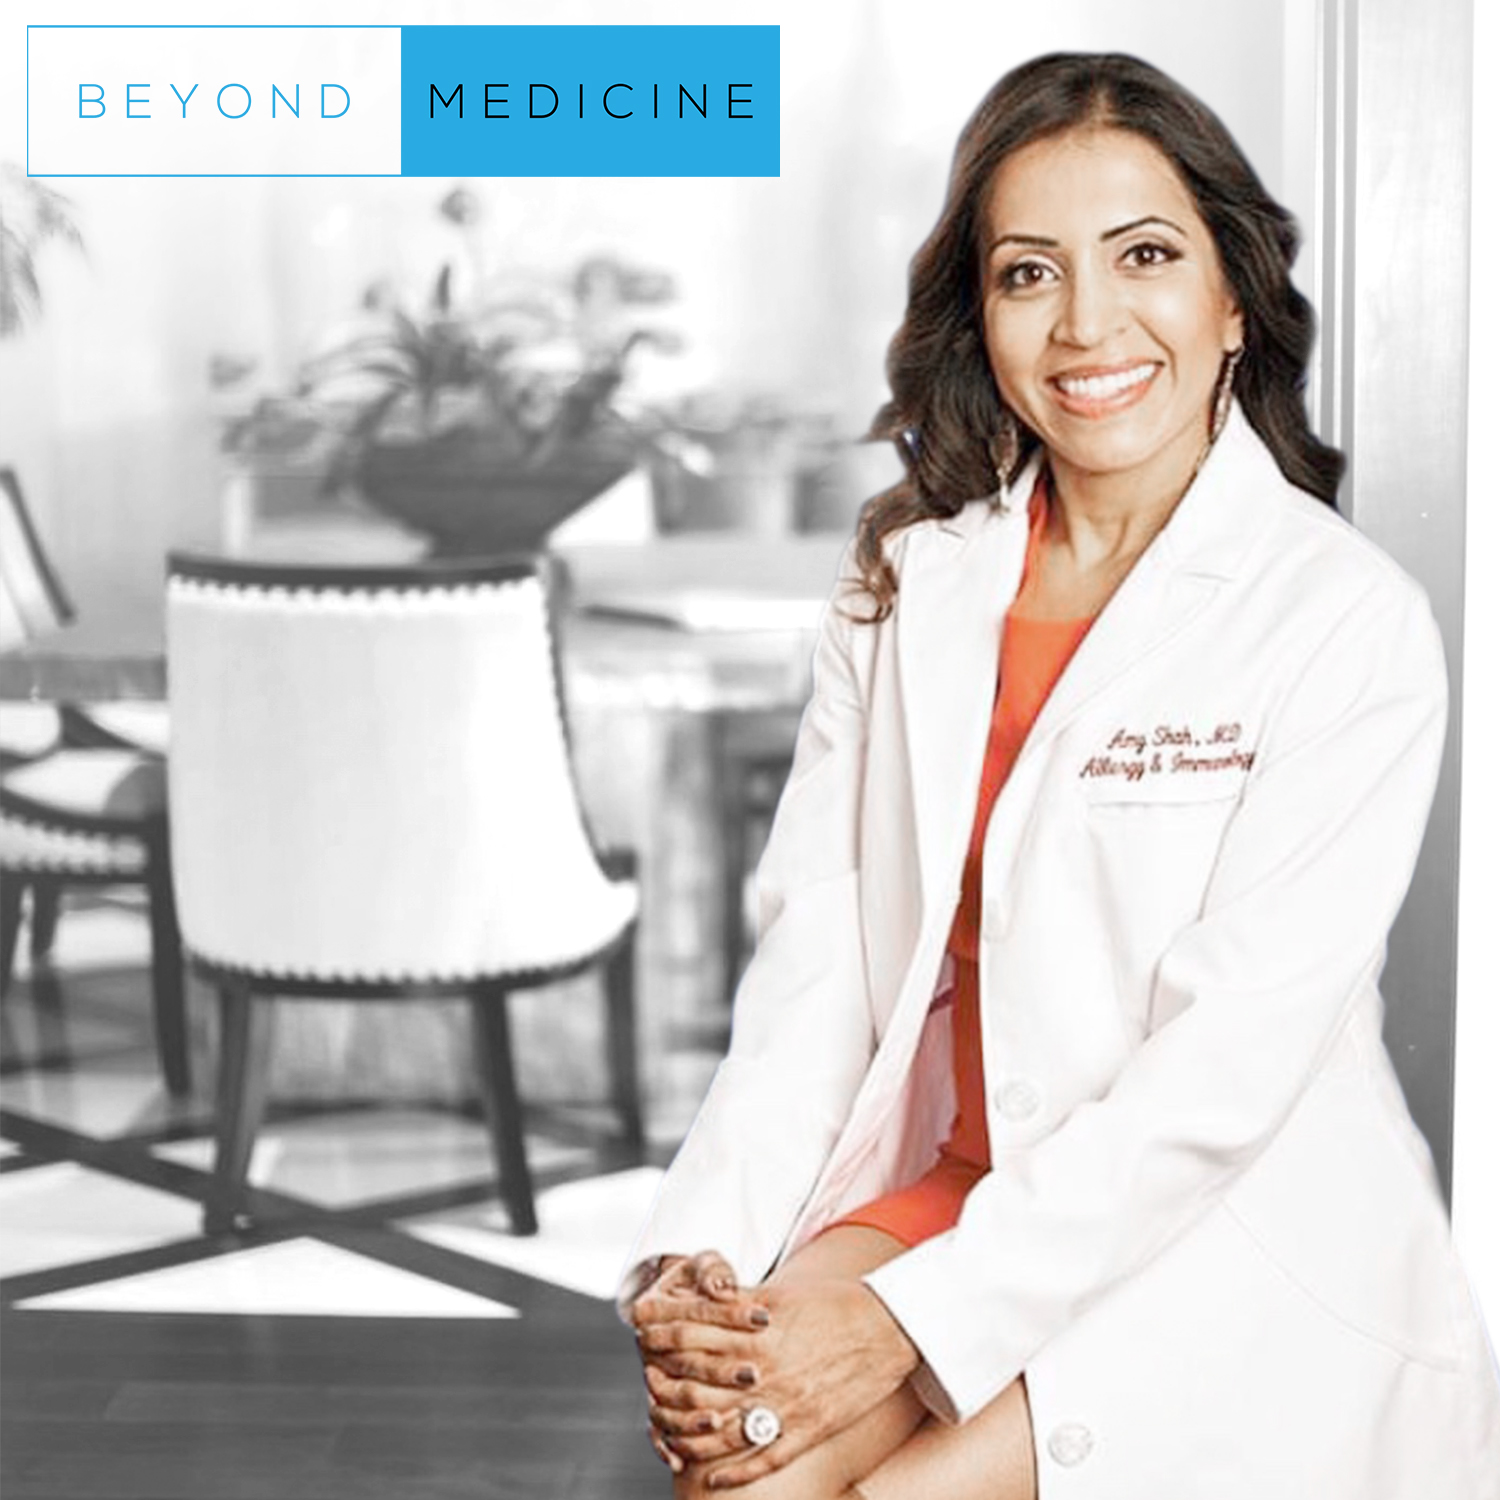 How to Change Your Microbiome, Intermittent Fasting & More. - Dr. Amy Shah, MD. Double board certified in Internal Medicine and Allergy/Immunology and one of leaders in the wellness space shares her expertise with us on how to change our microbiome and some benefits of intermittent fasting.